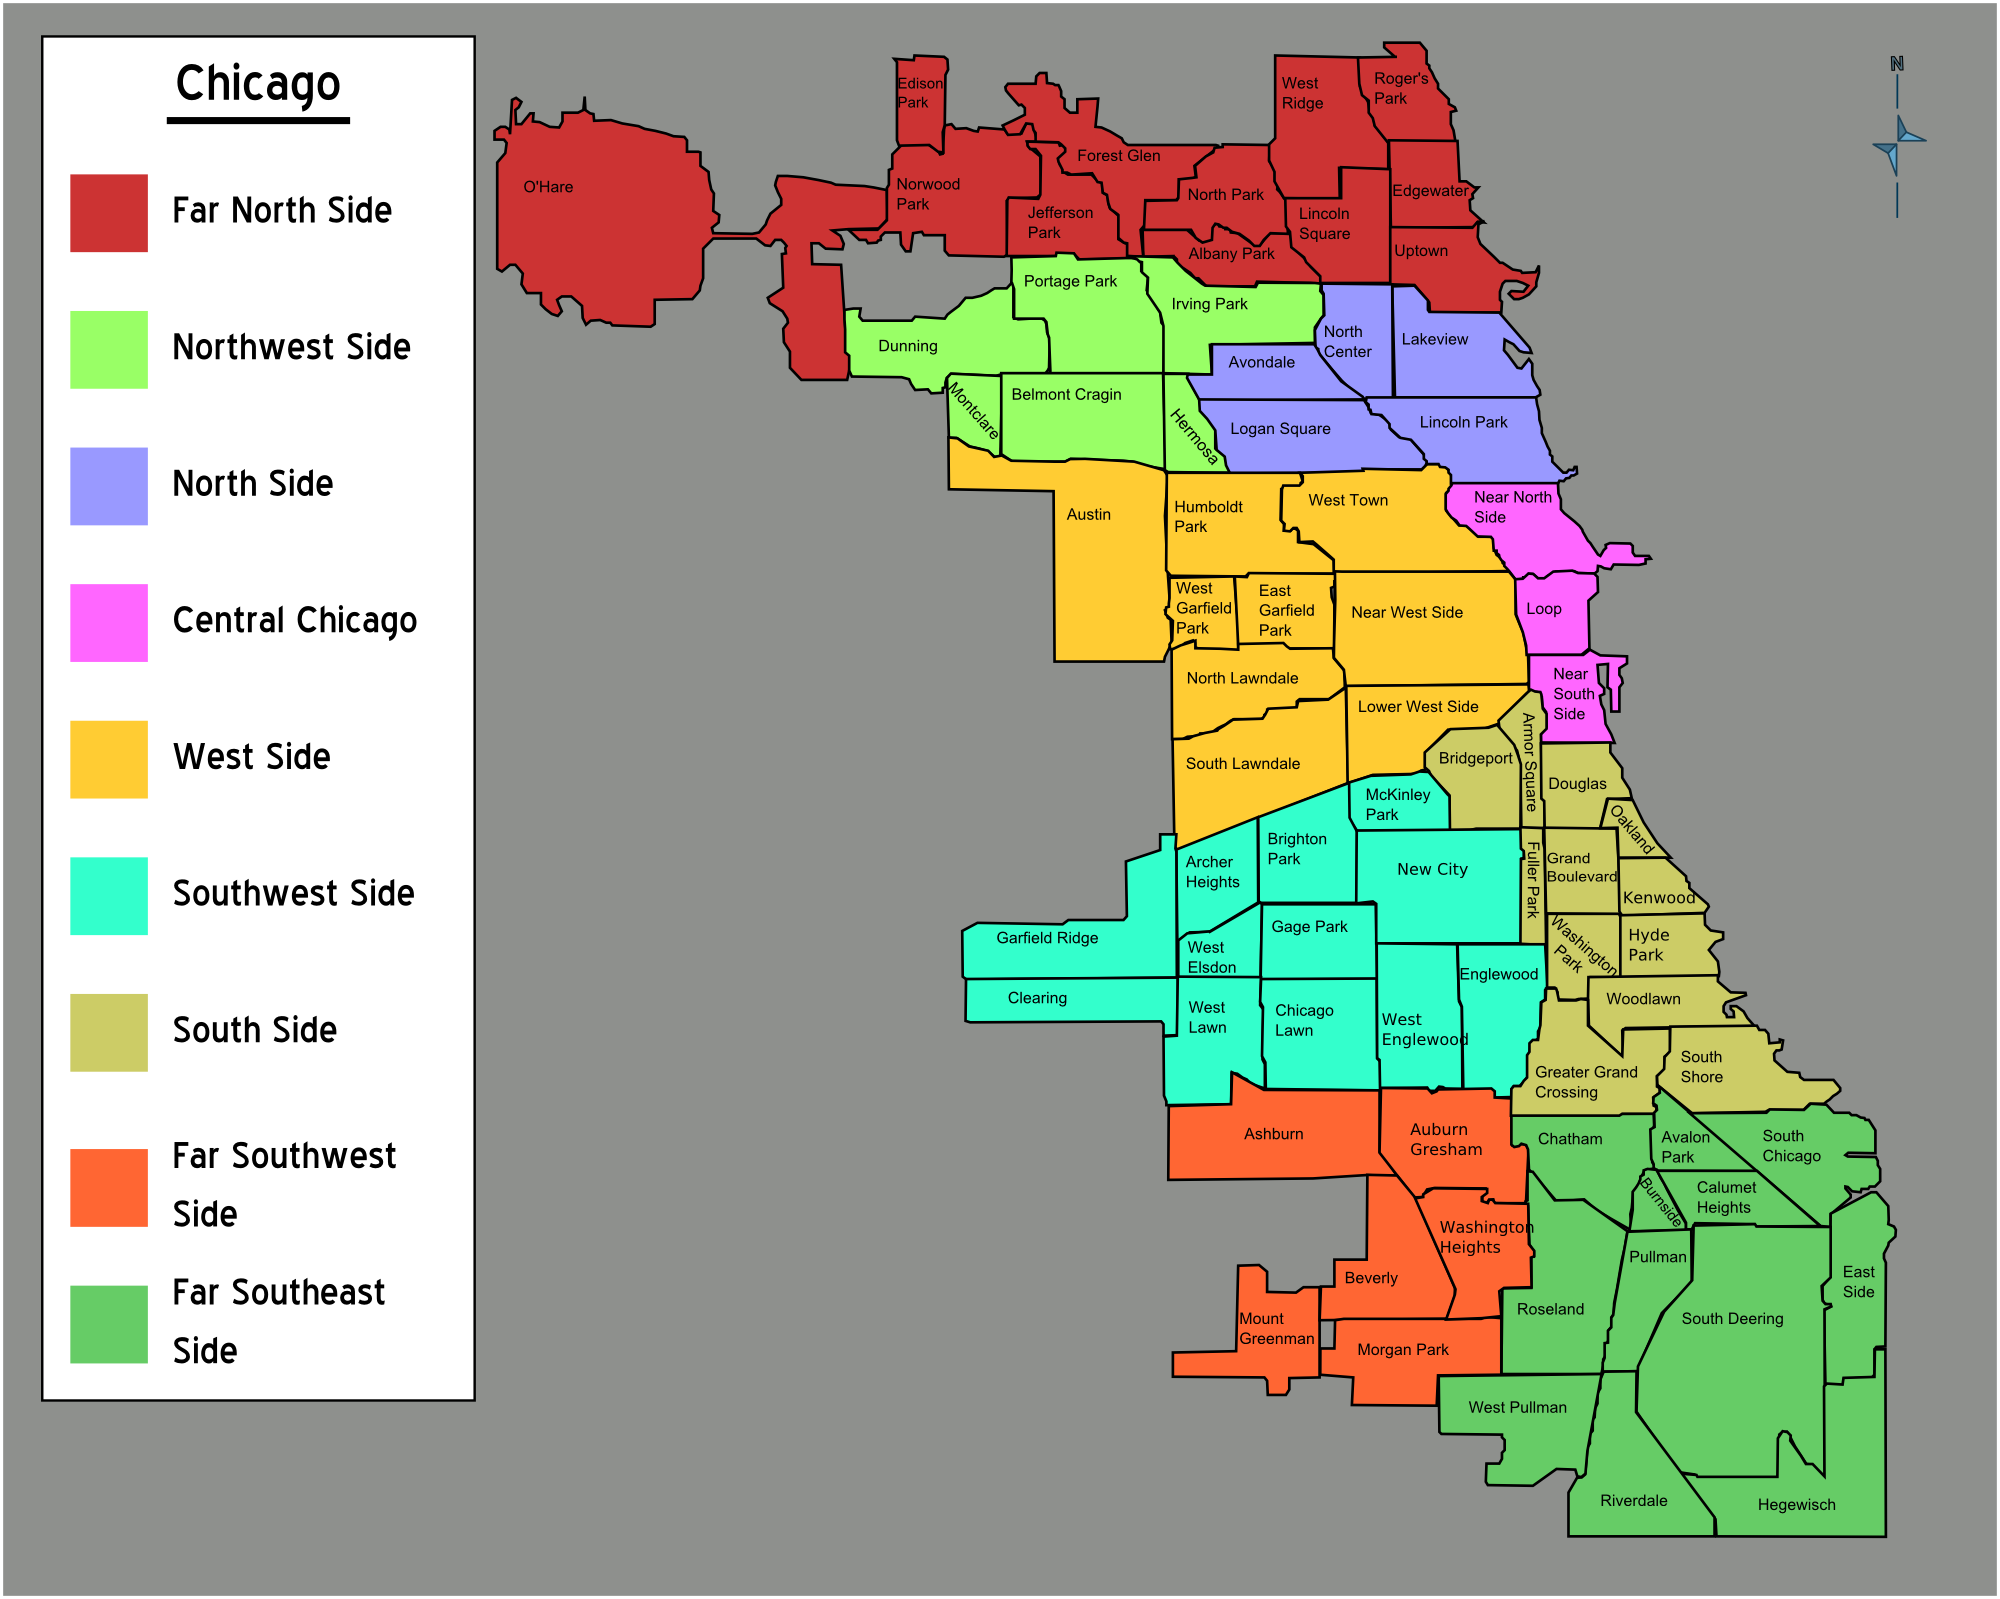 Untitled - Chicago illinois map of suburbs